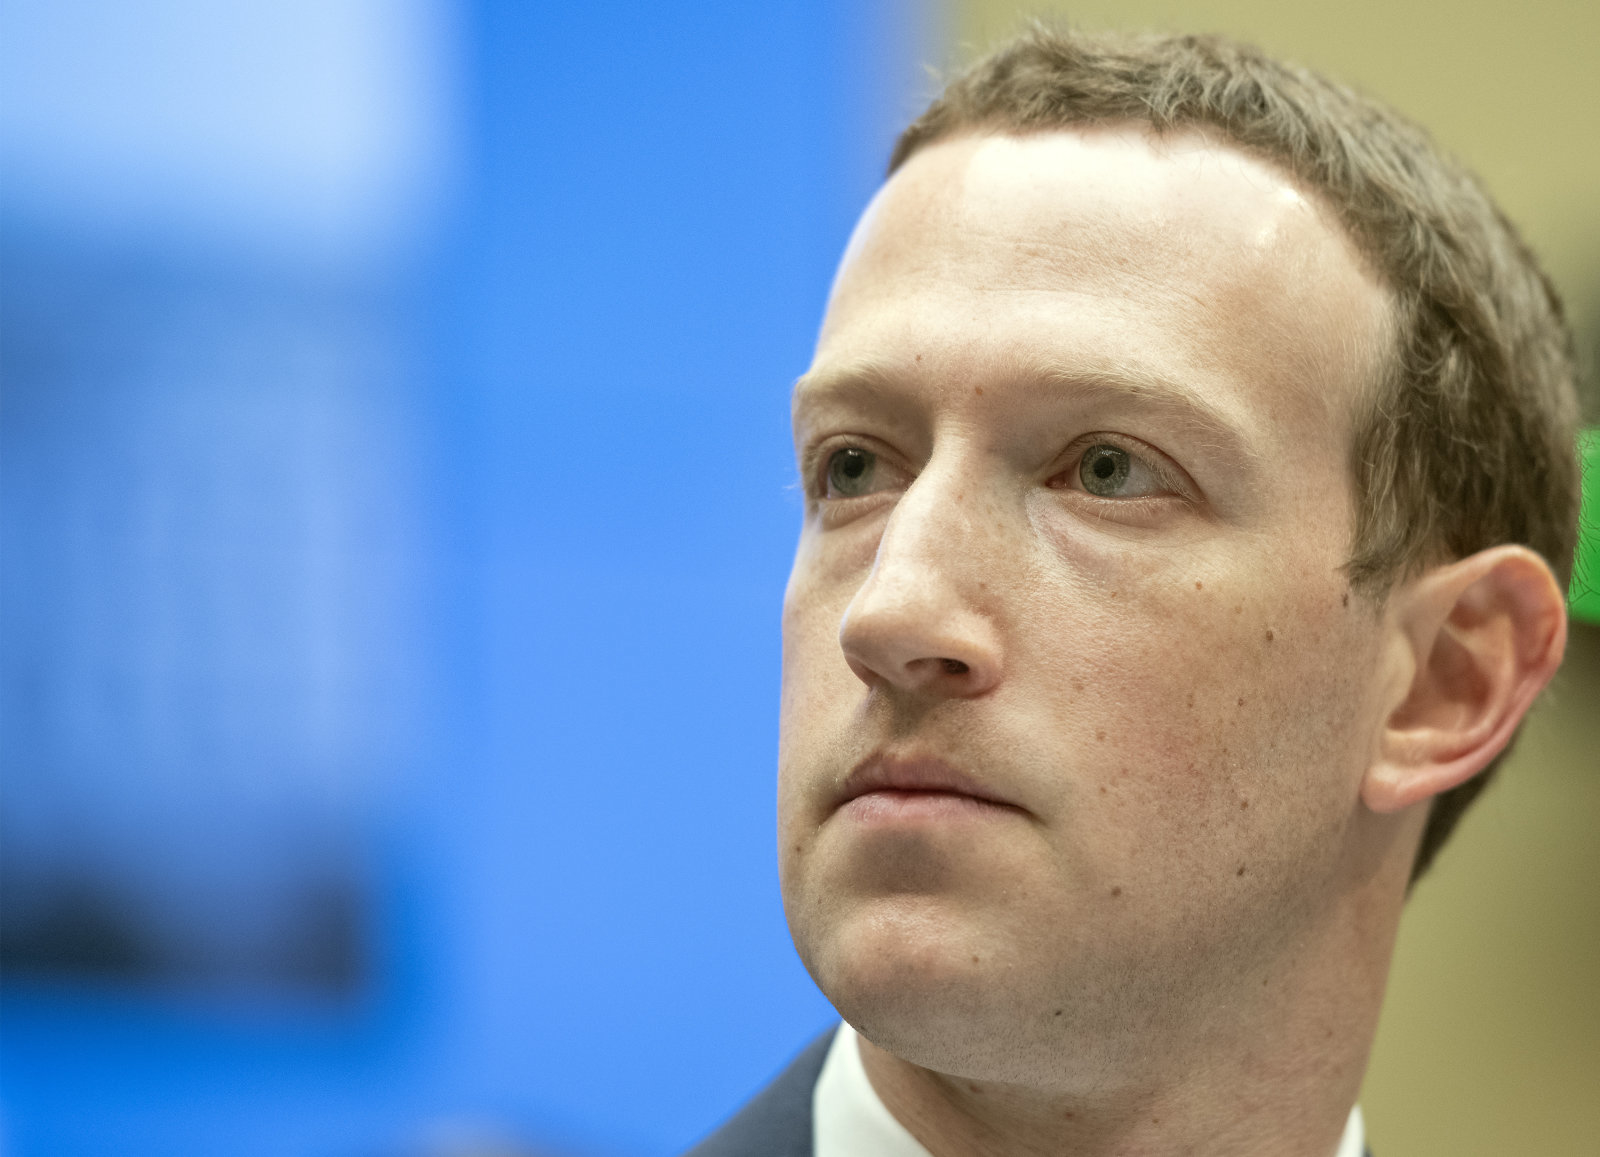 Hacker-For-Hire to Livestream Deletion of Zuckerberg's Facebook Page